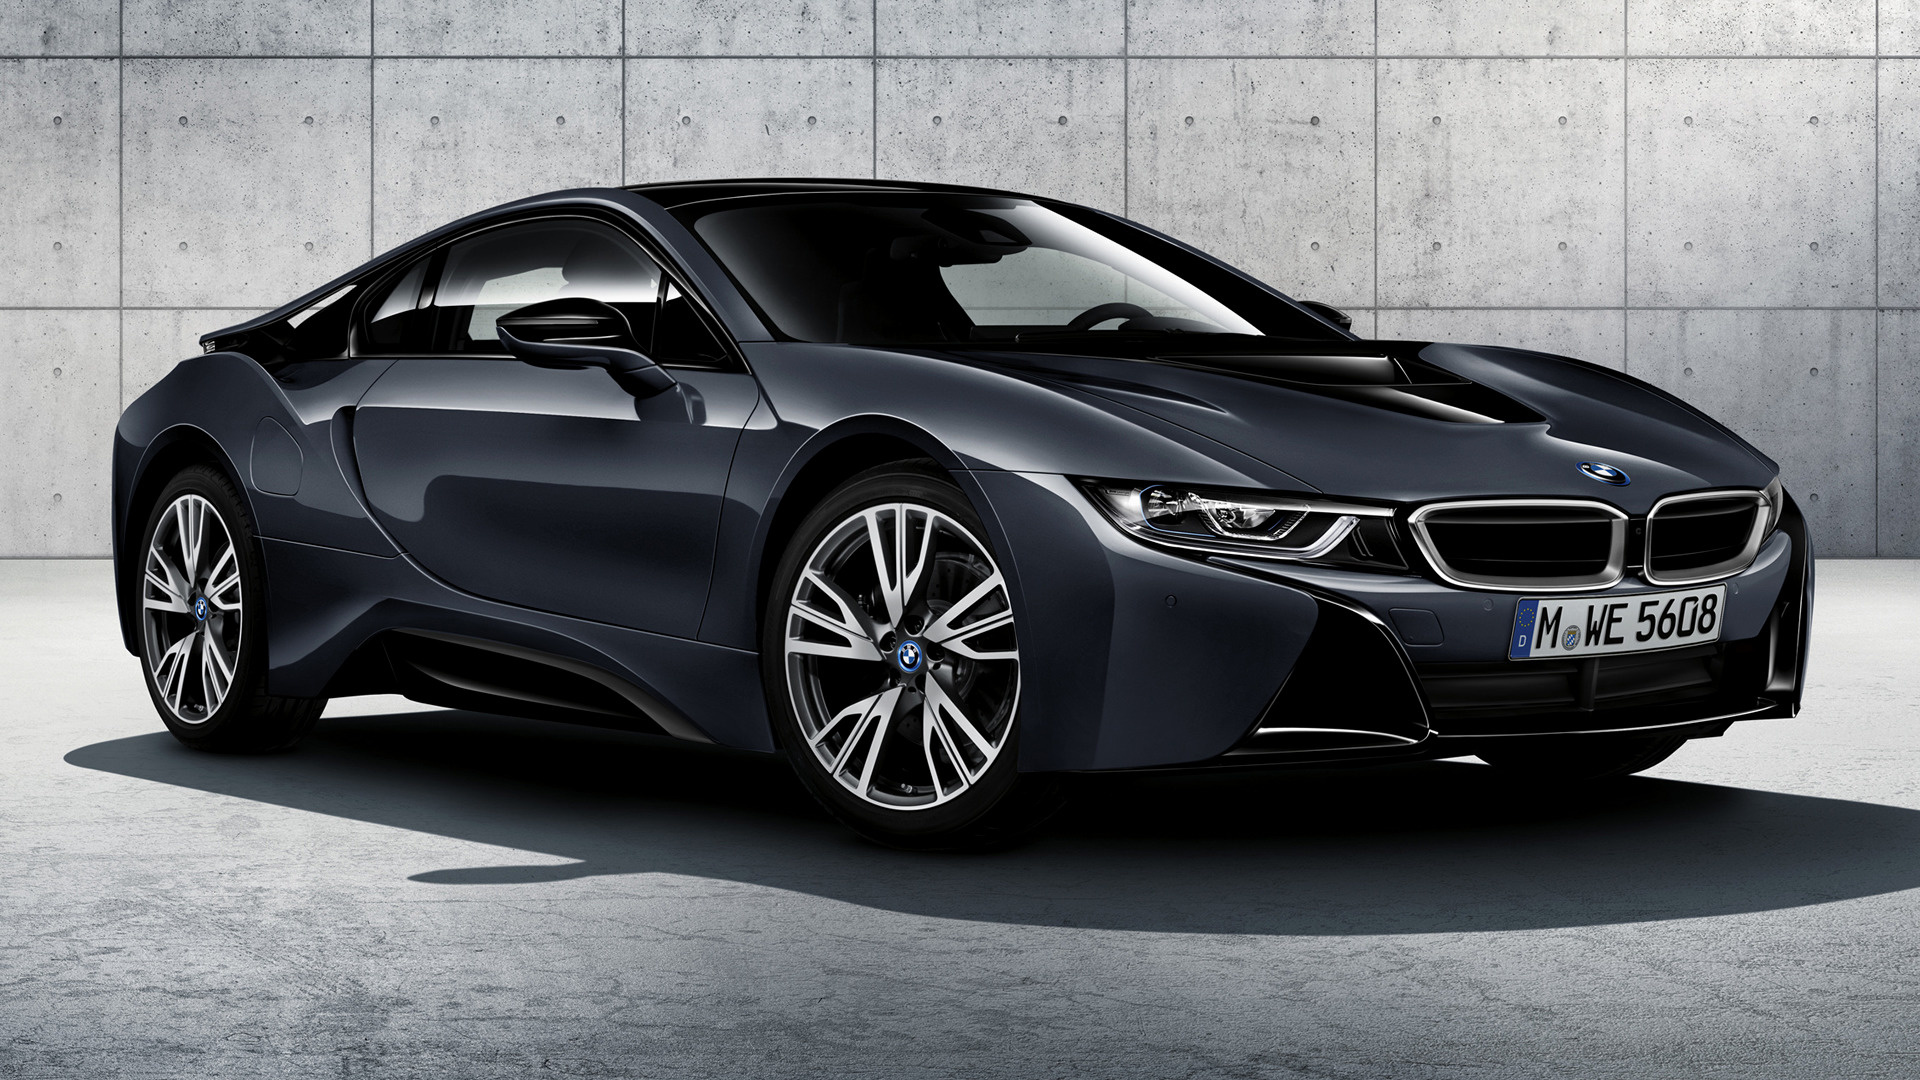 BMW i8 Protonic Dark Silver Edition (2016) Wallpapers and ...